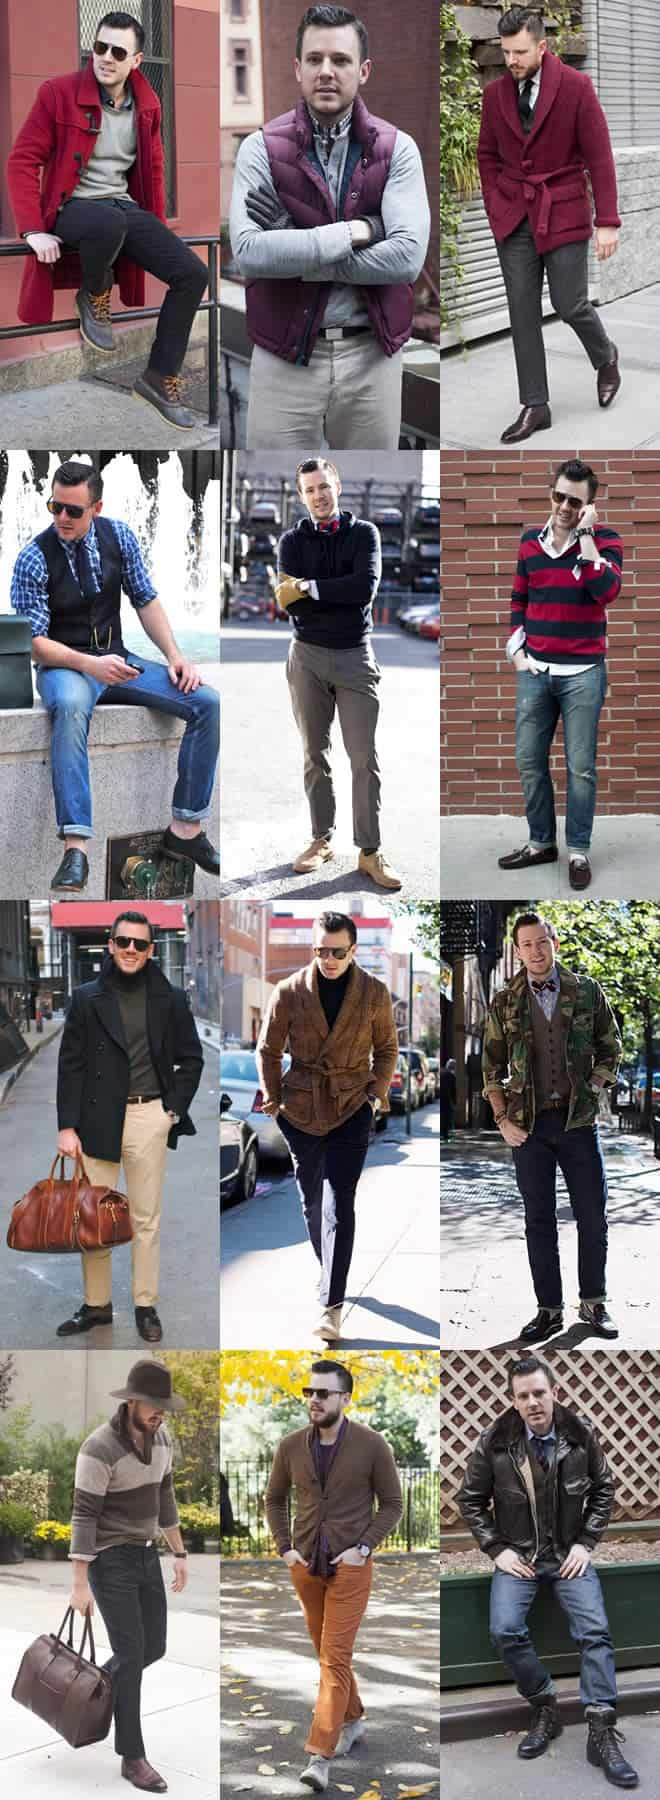 Dan Trepanier - The Style Blogger Lookbook